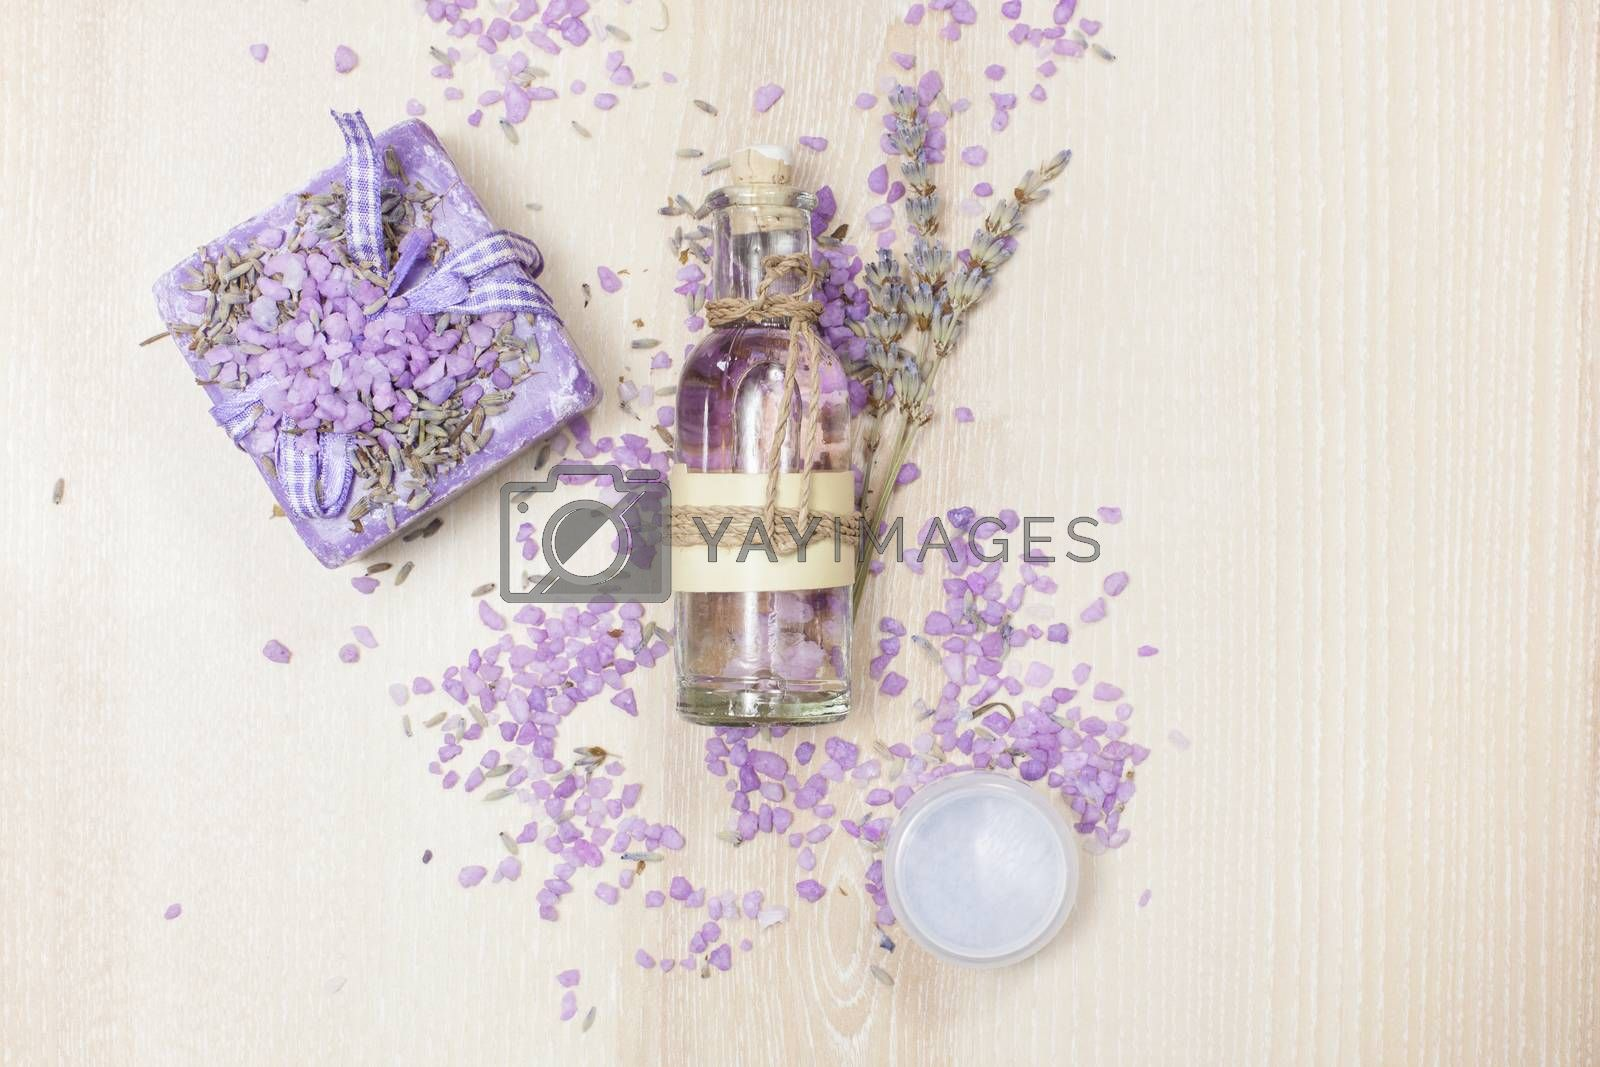 Lavender Beauty Products by Slast20